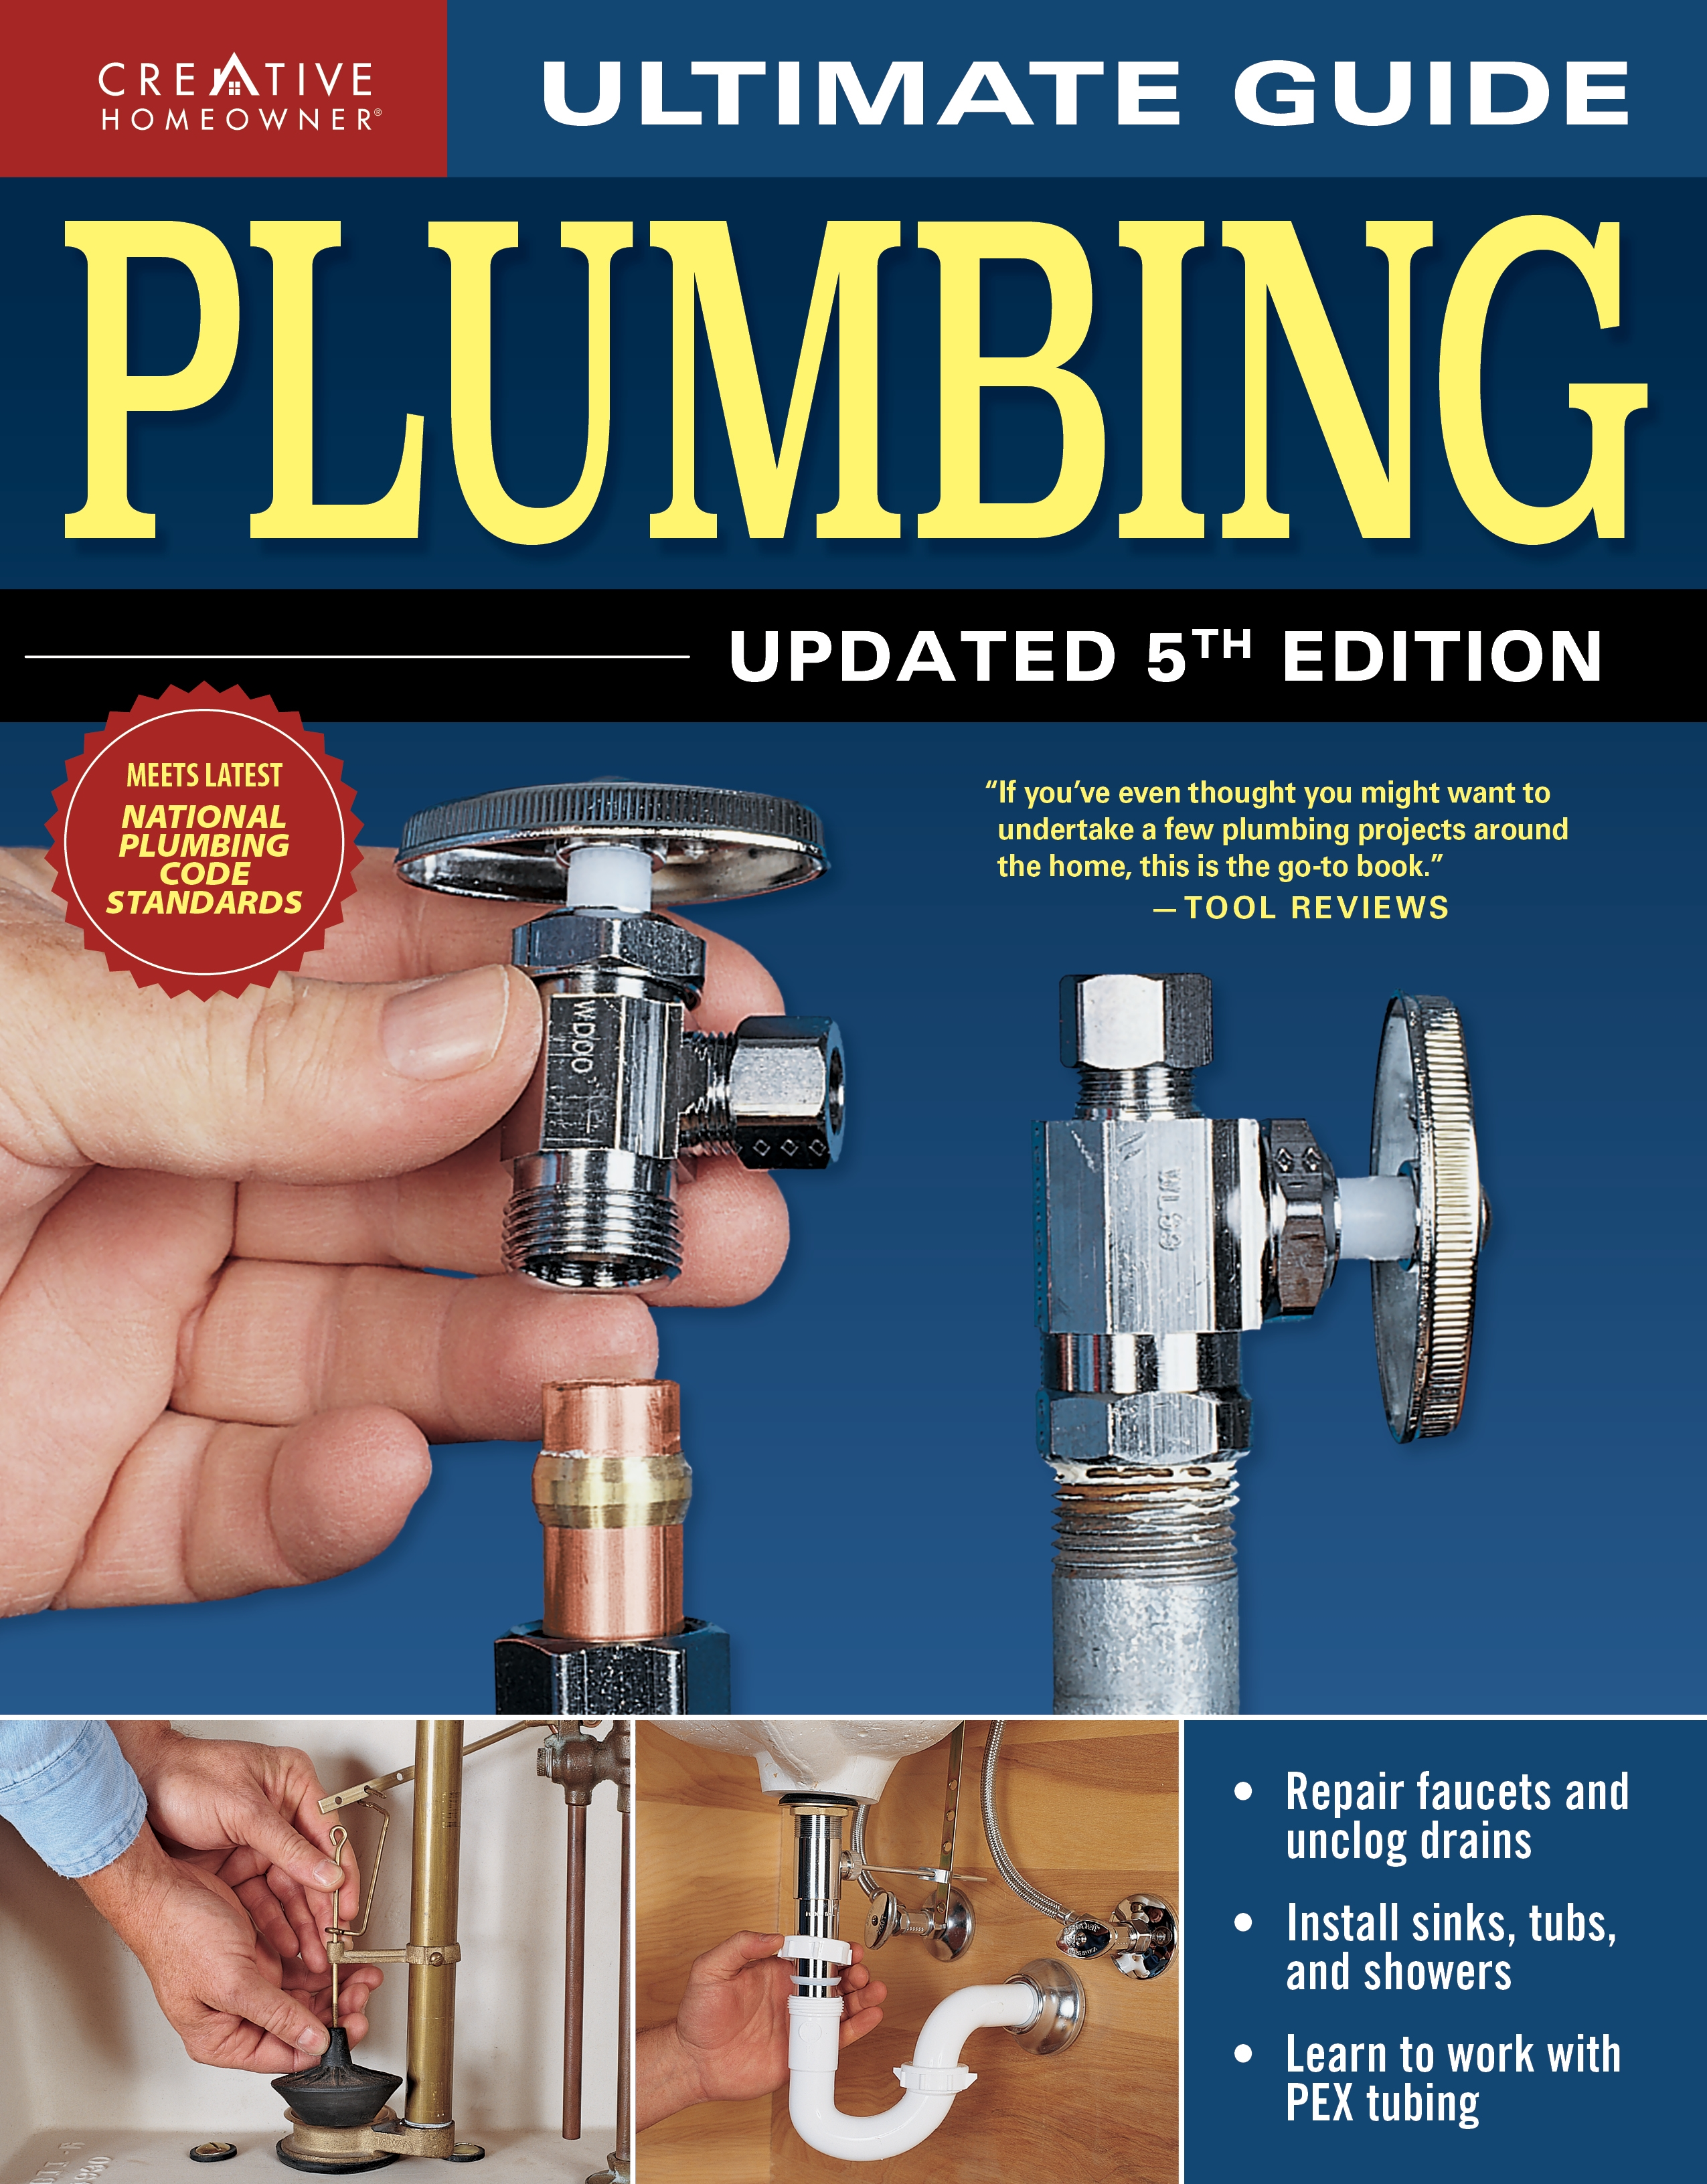 Ultimate Guide: Plumbing, Updated 5th Edition